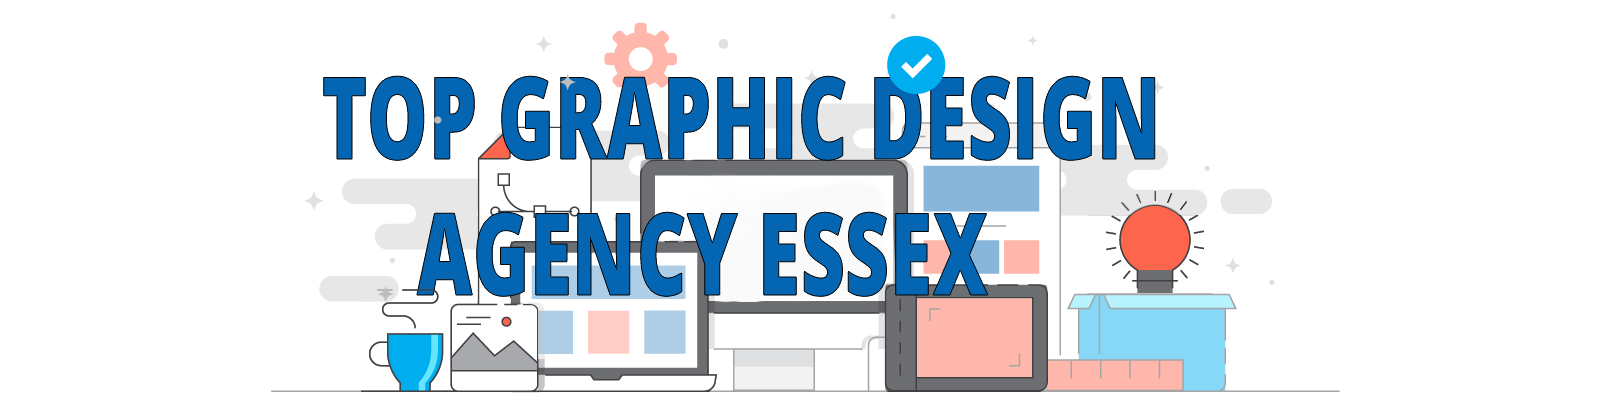 graphic design agency in essex: communicate with audience easily